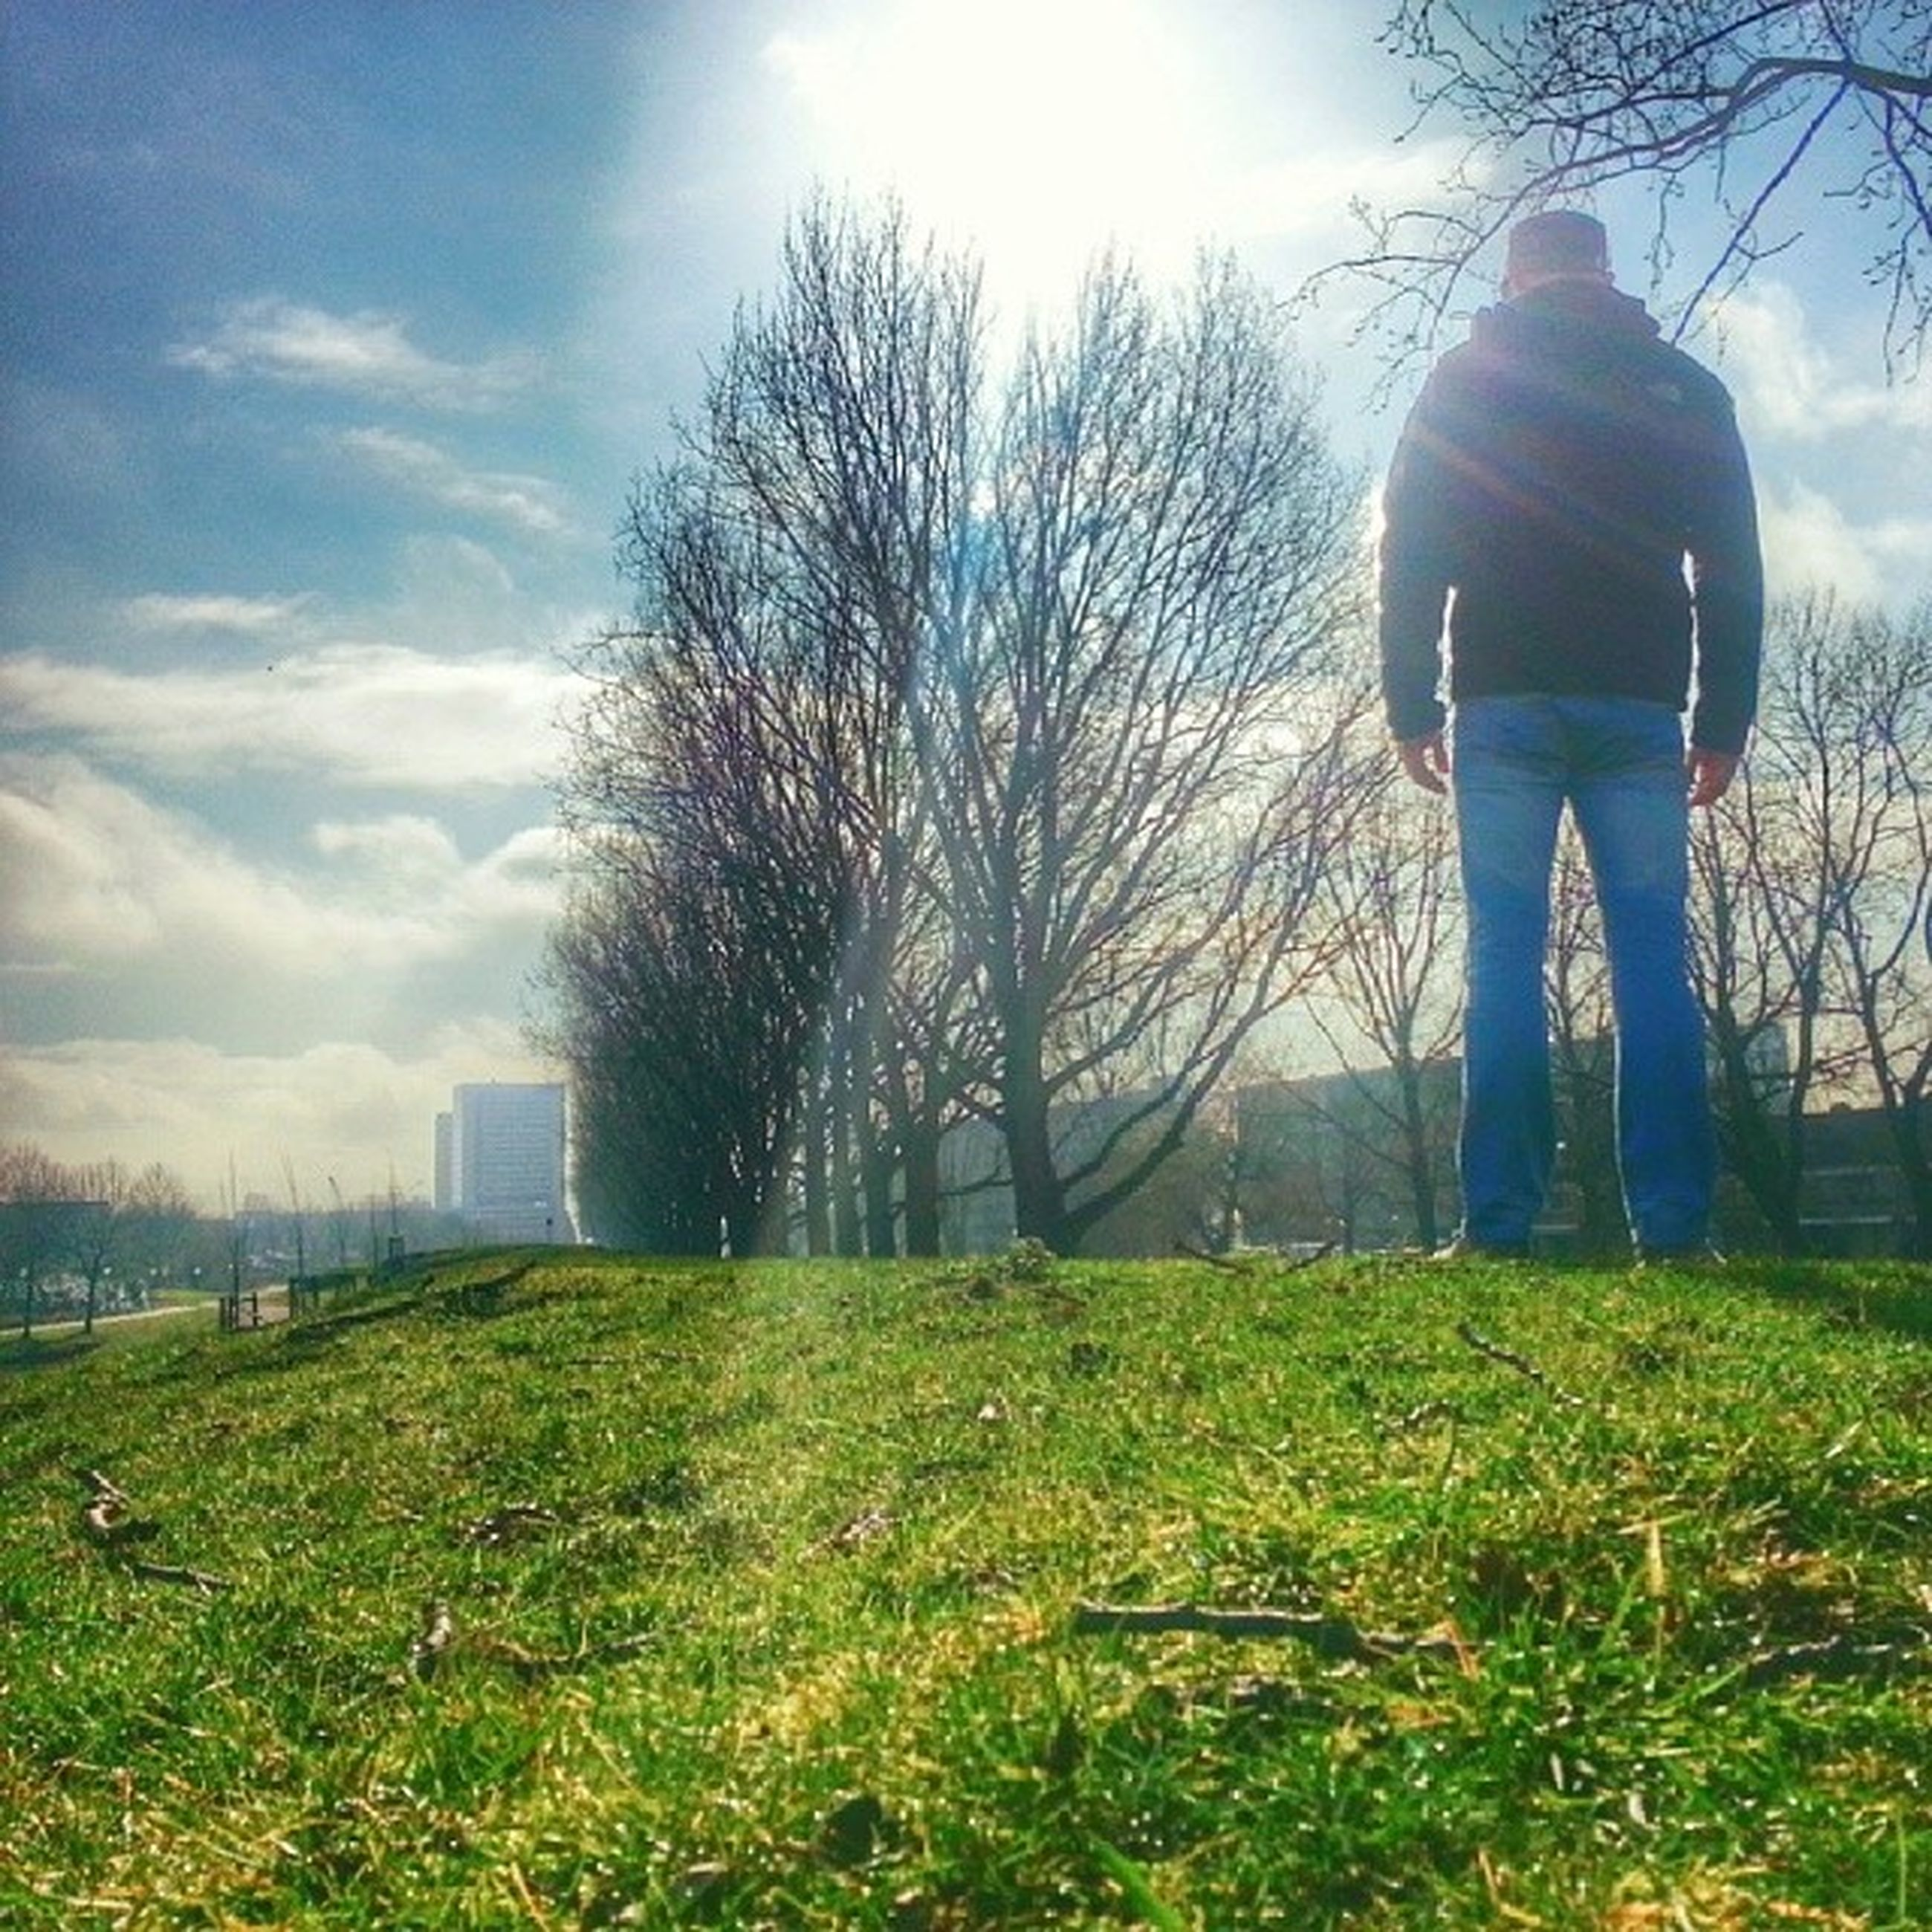 grass, lifestyles, full length, leisure activity, field, tree, sky, rear view, standing, bare tree, men, grassy, casual clothing, landscape, nature, person, tranquility, sunlight